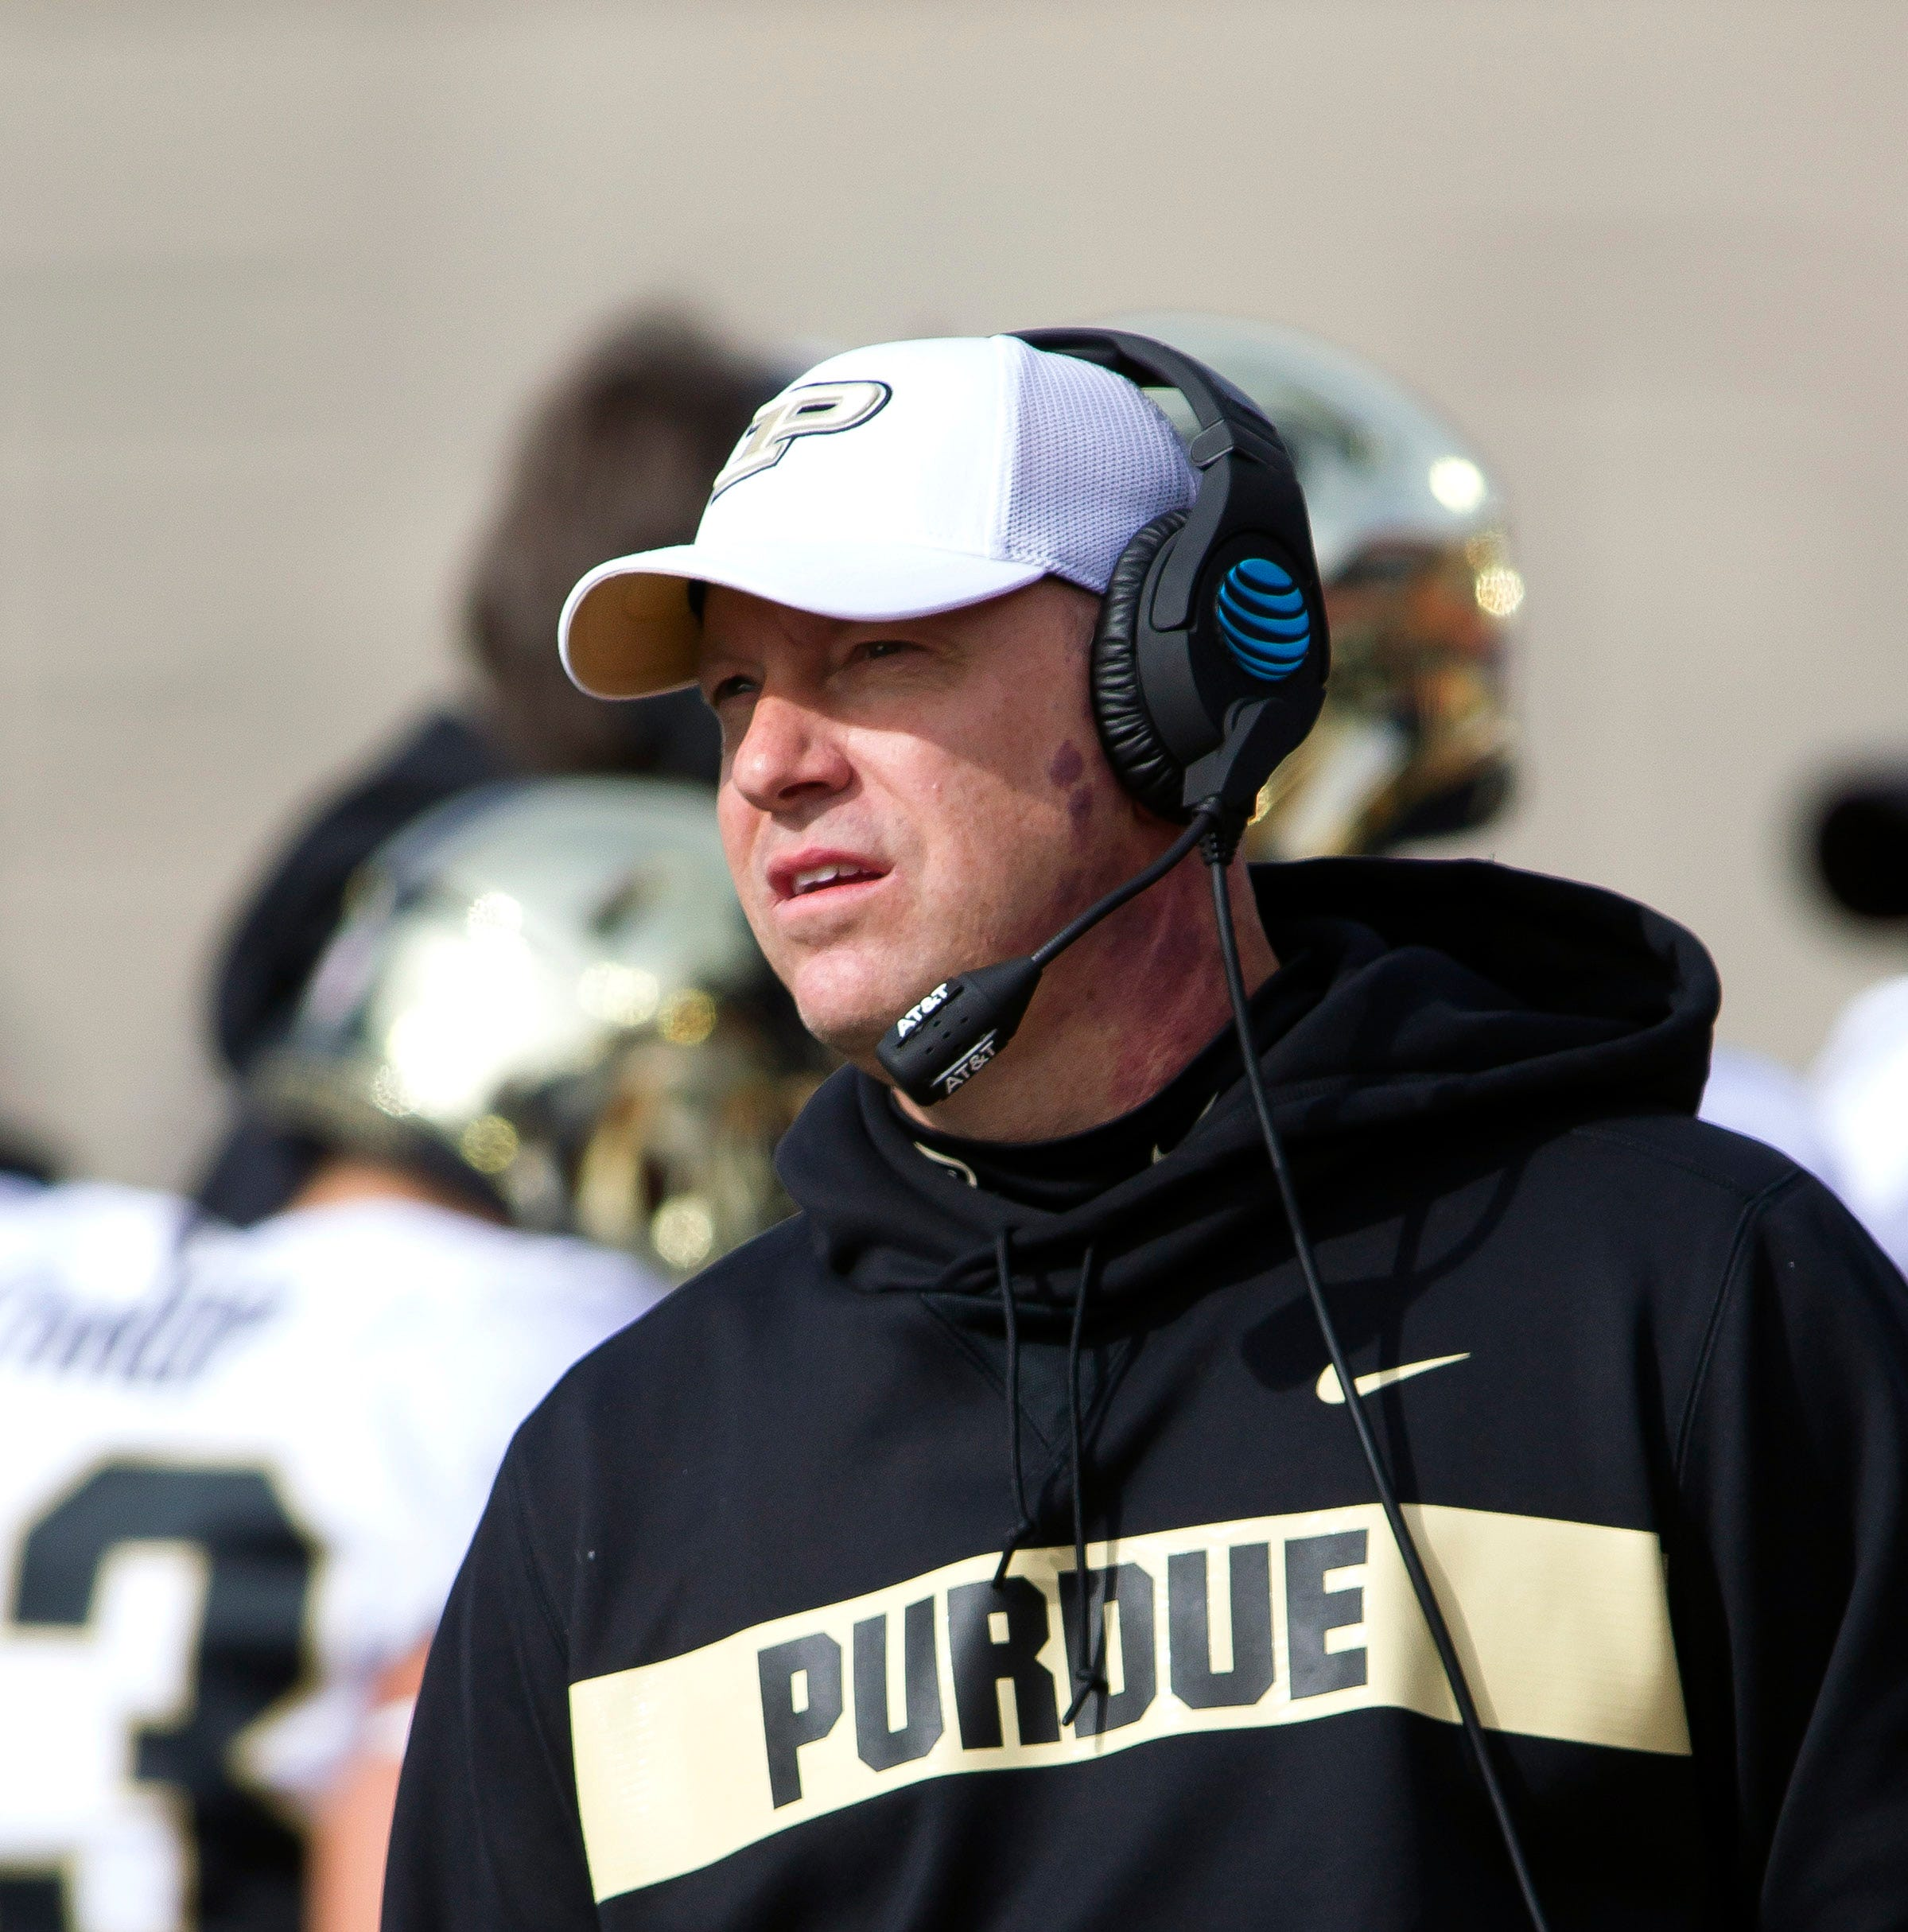 Oct 13, 2018; Champaign, IL, USA; Purdue Boilermakers head coach Jeff Brohm observes his team before the start of the first quarter against the Illinois Fighting Illini at Memorial Stadium. Mandatory Credit: Mike Granse-USA TODAY Sports